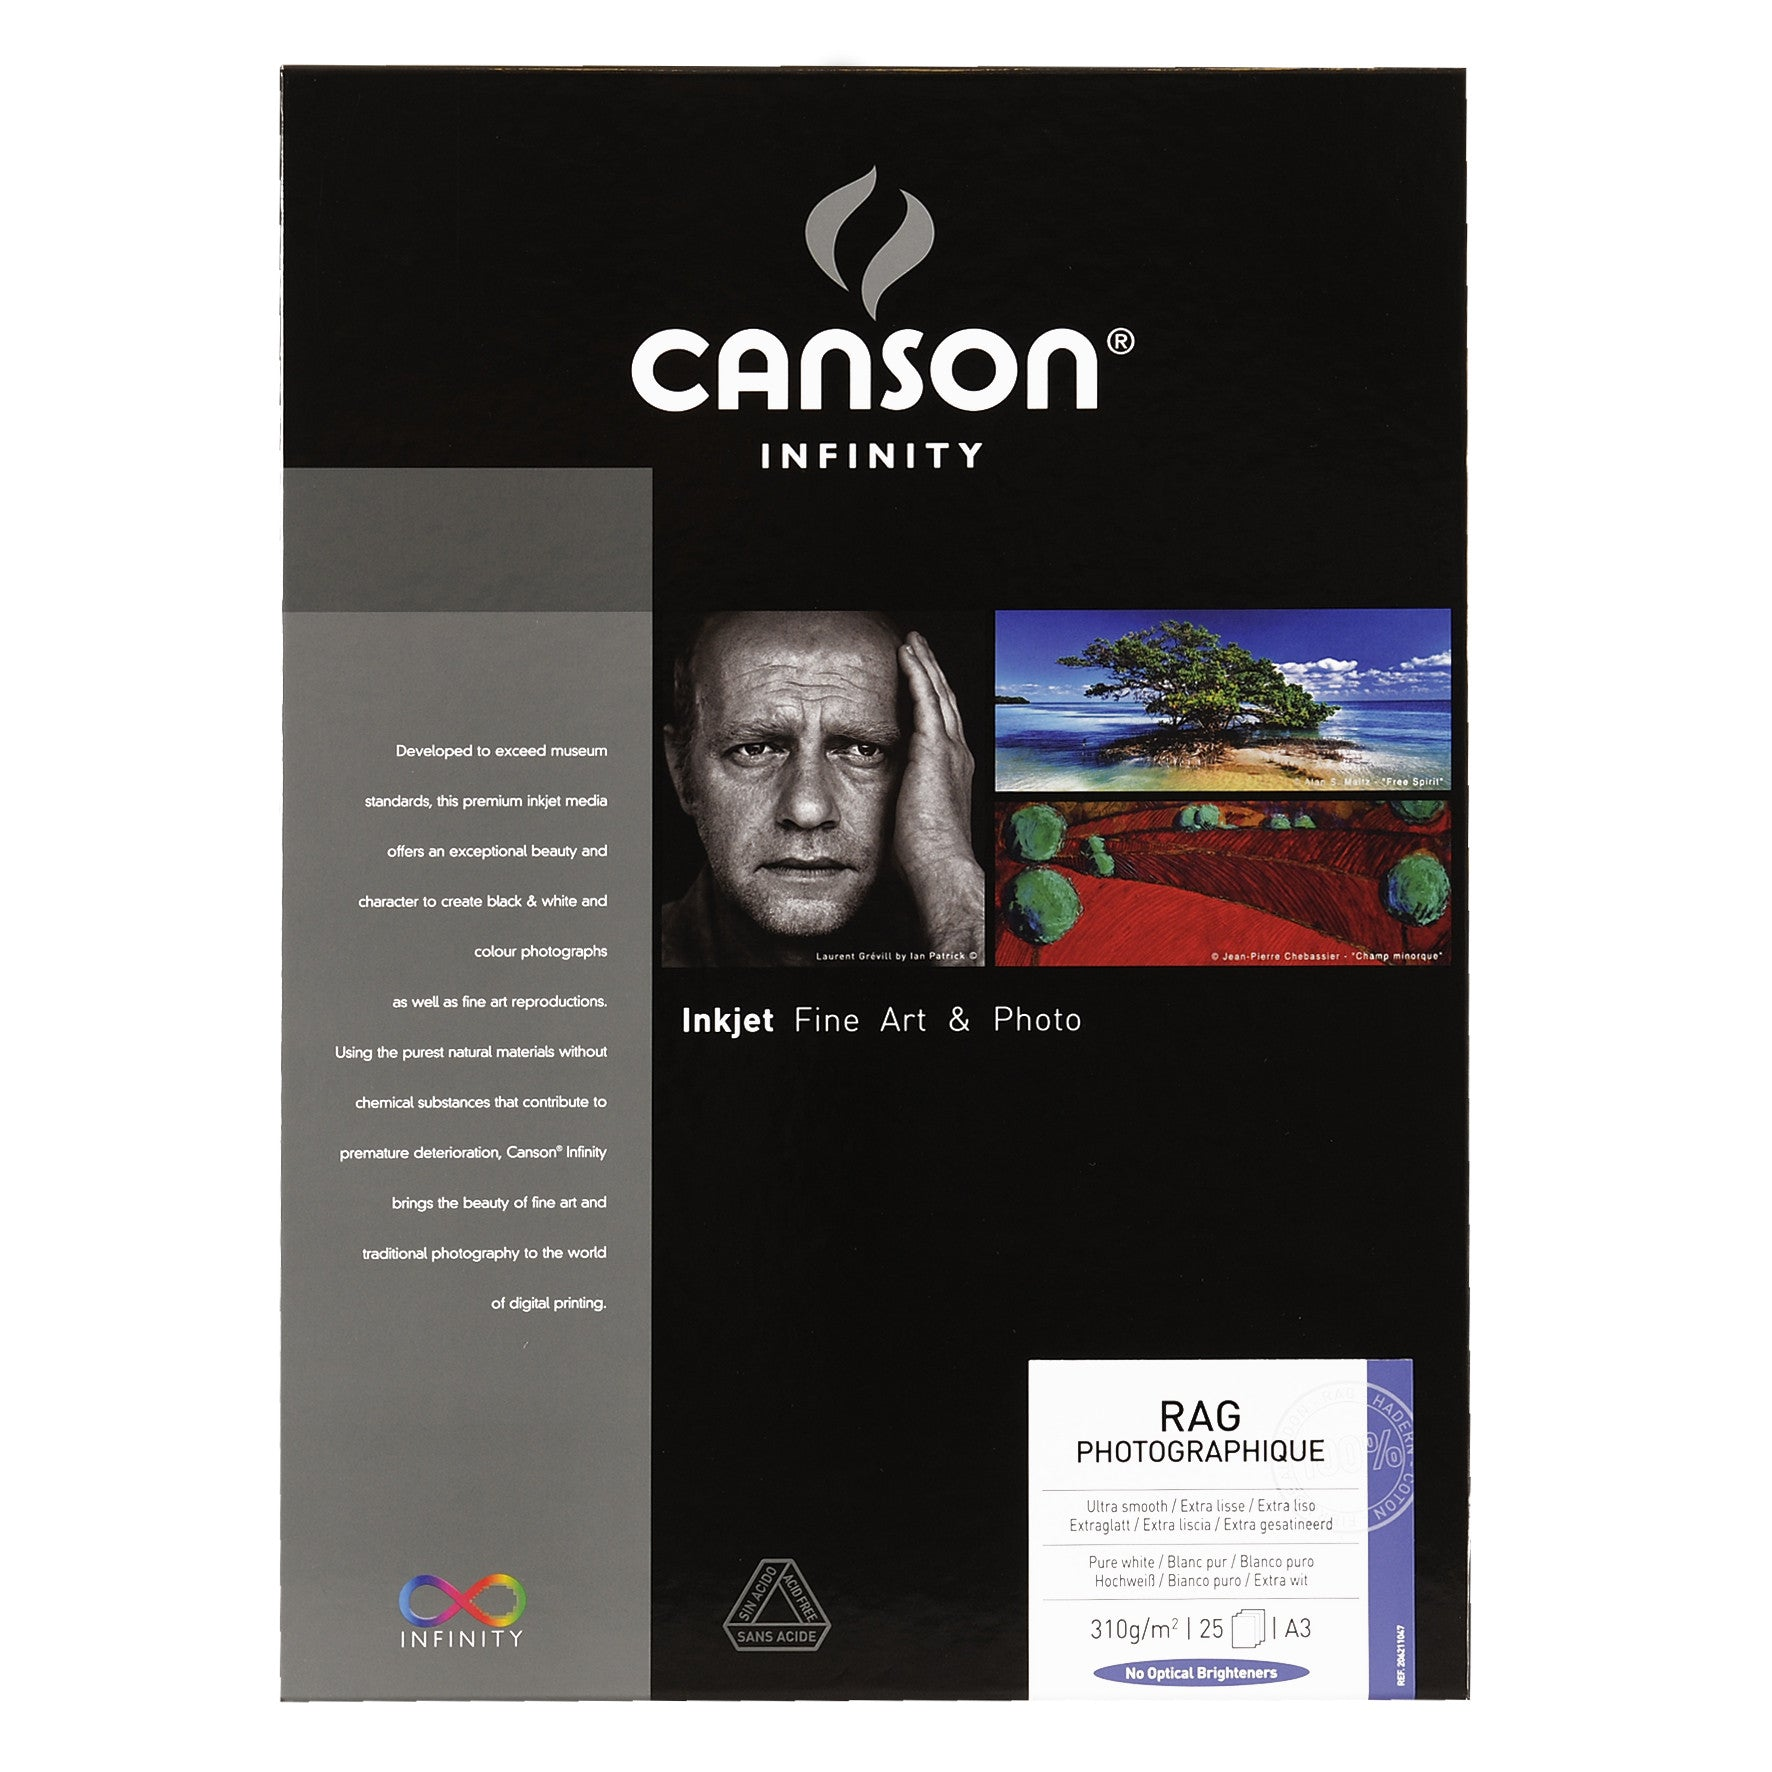 Canson Infinity Rag Photographique - 310gsm - A3 (25 sheets)